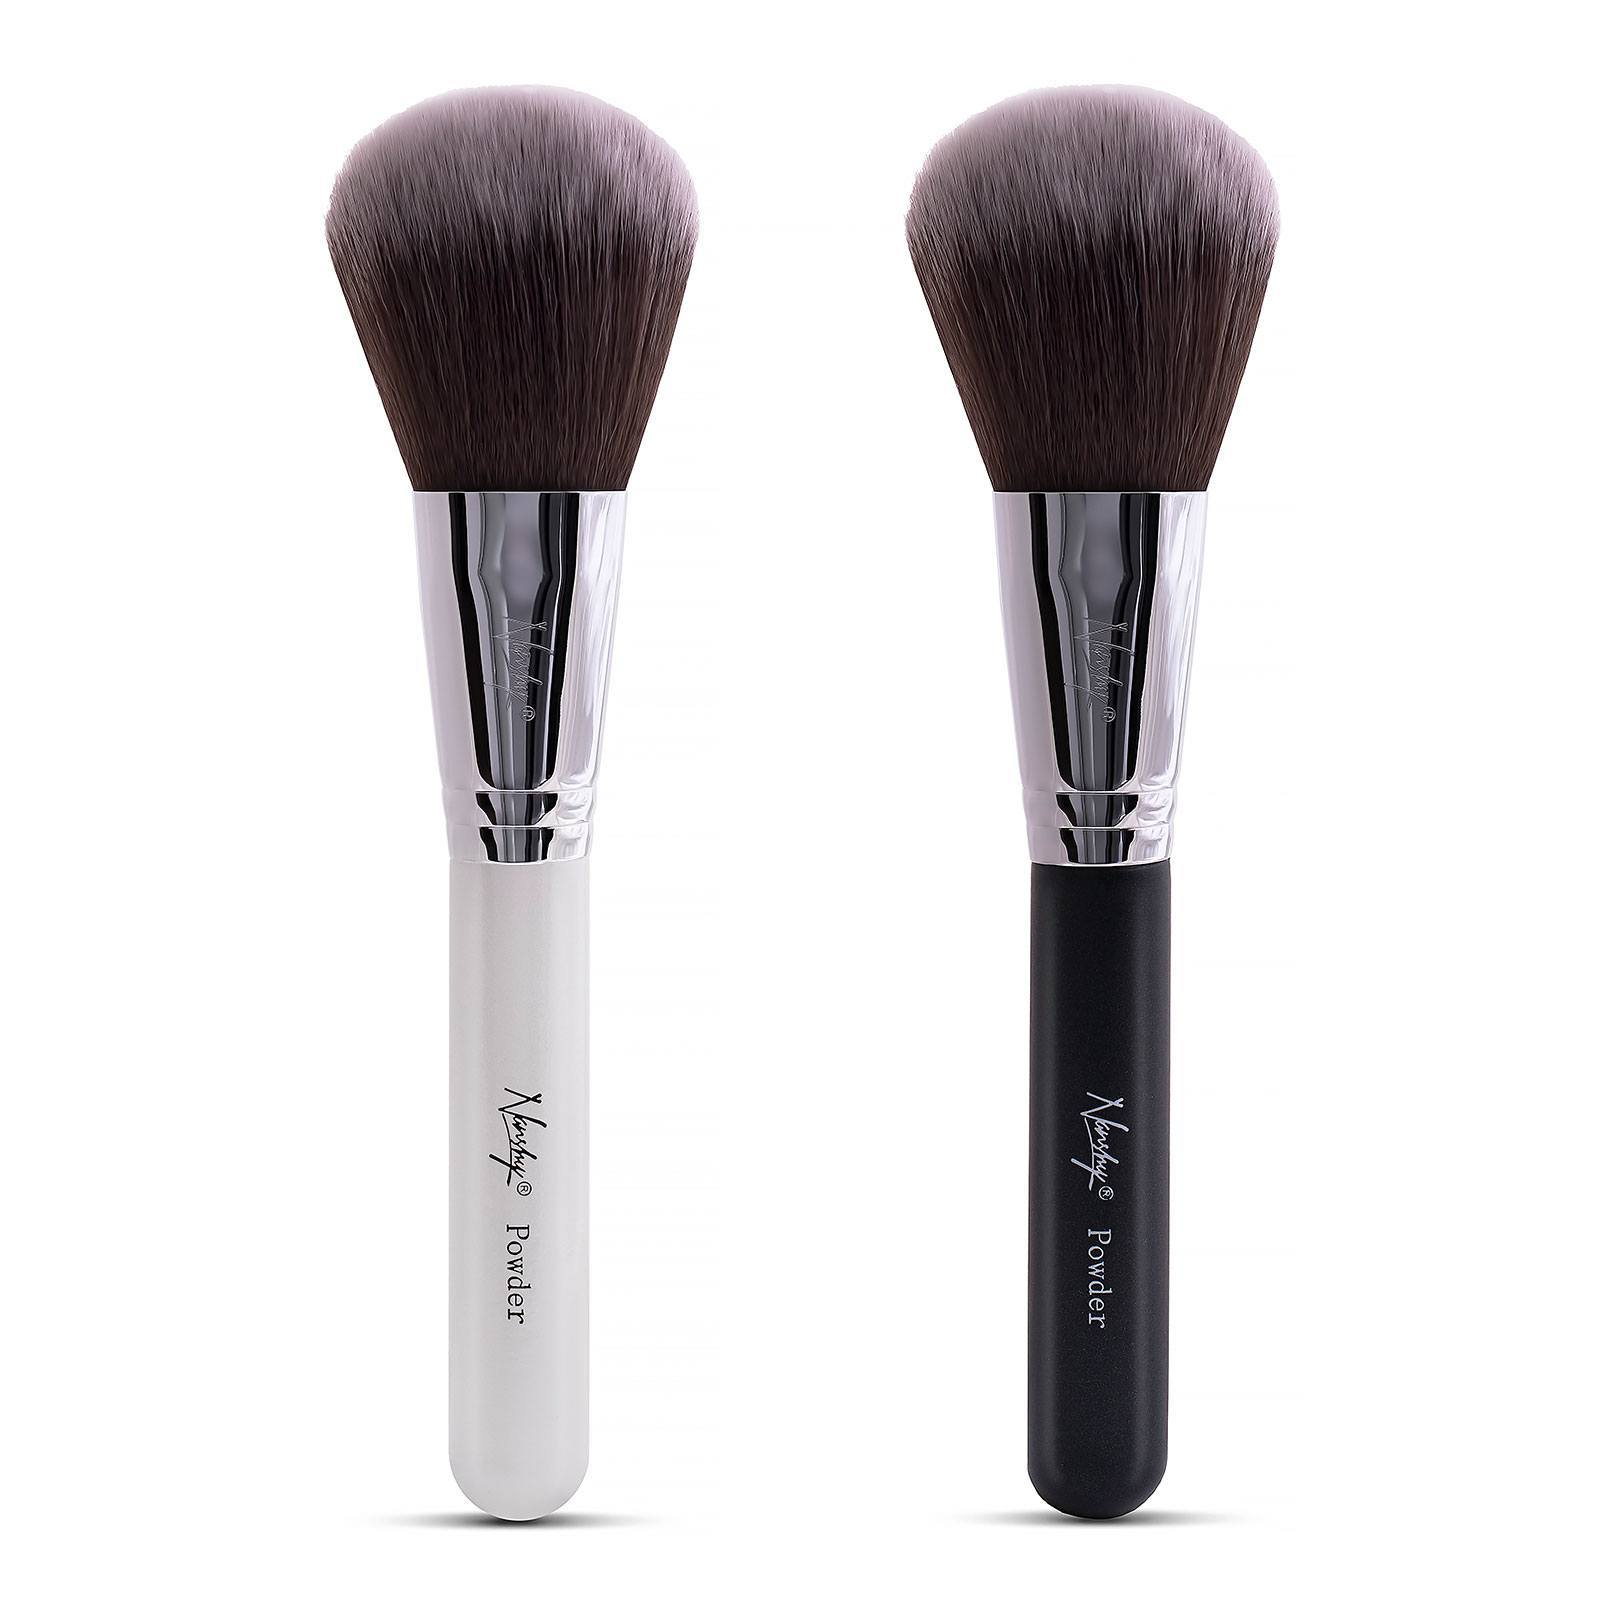 Powder Makeup Brush by Nanshy UK Vegan Brand